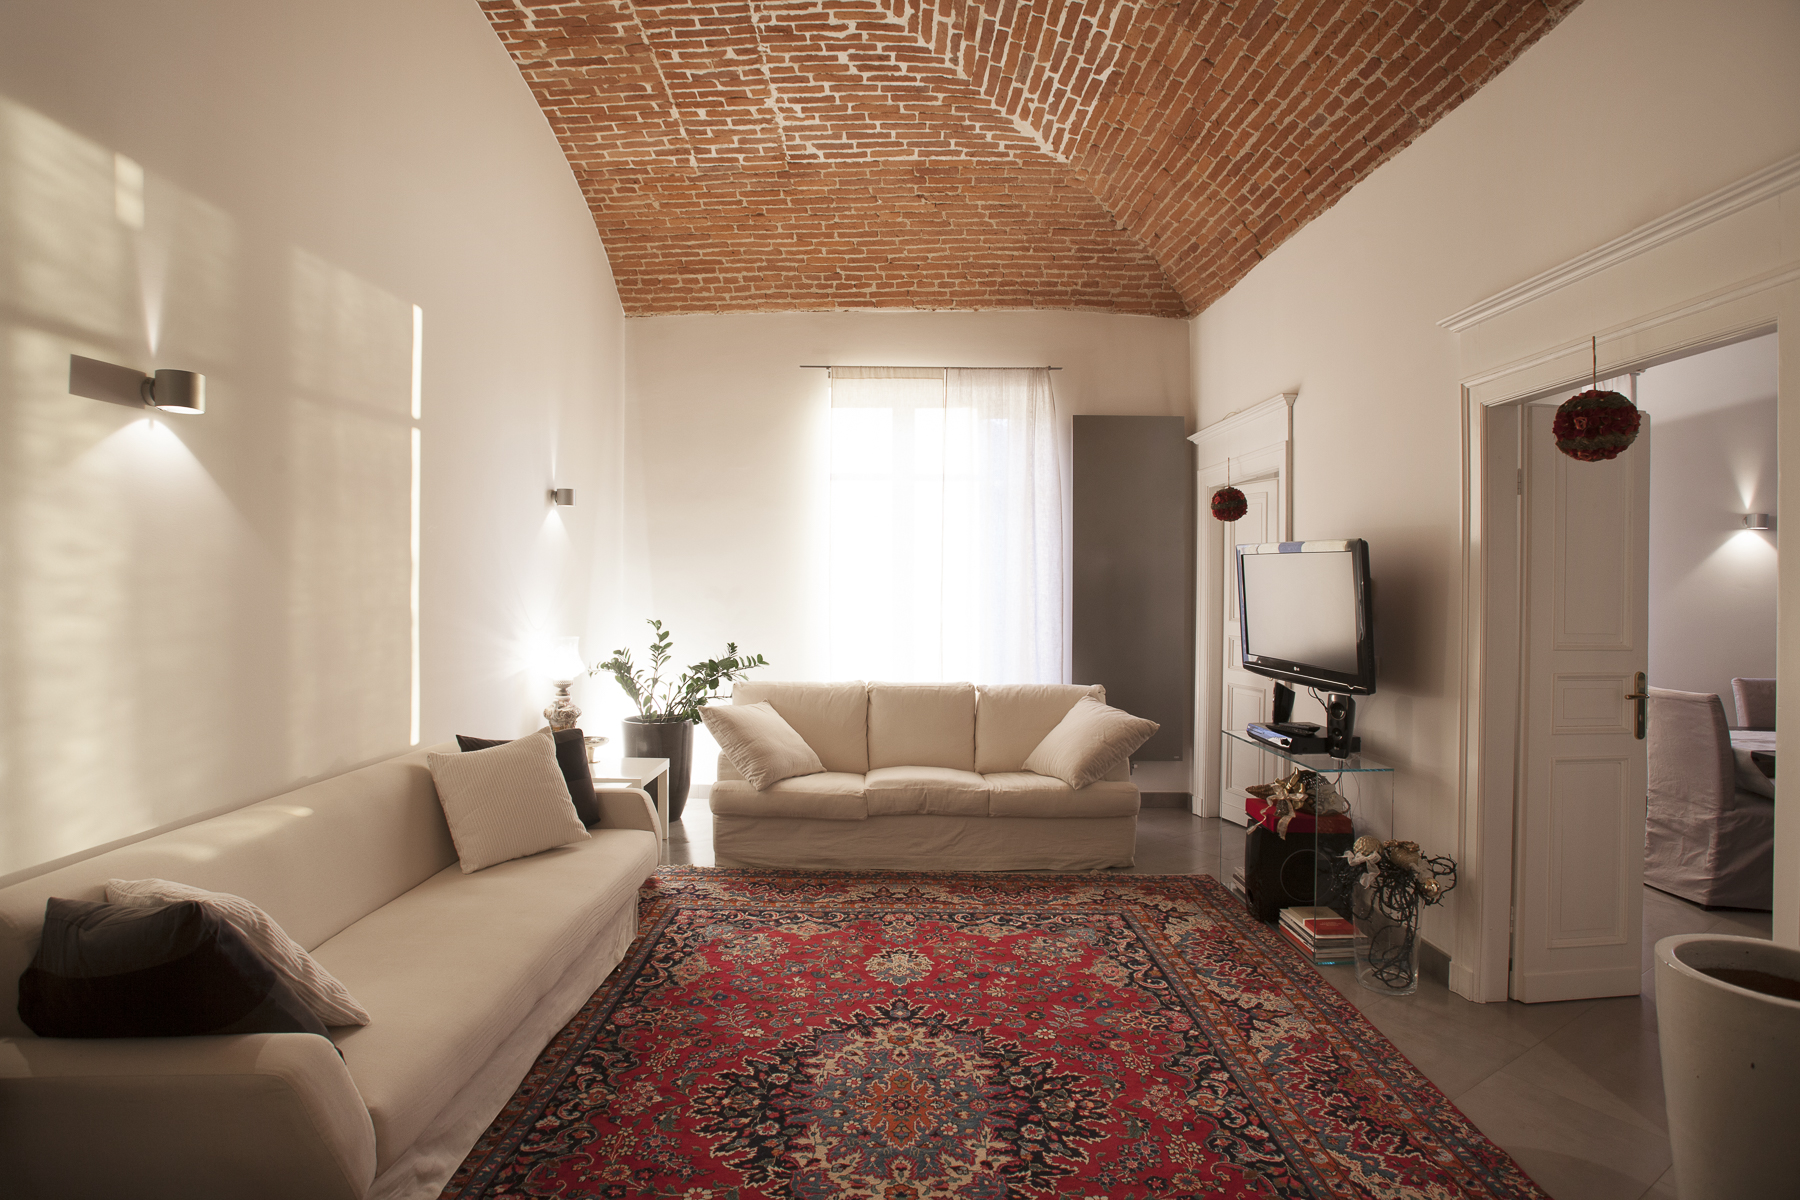 Apartments for Sale at Residential property for Sale in Chieri (Italy) Chieri, Turin Italy